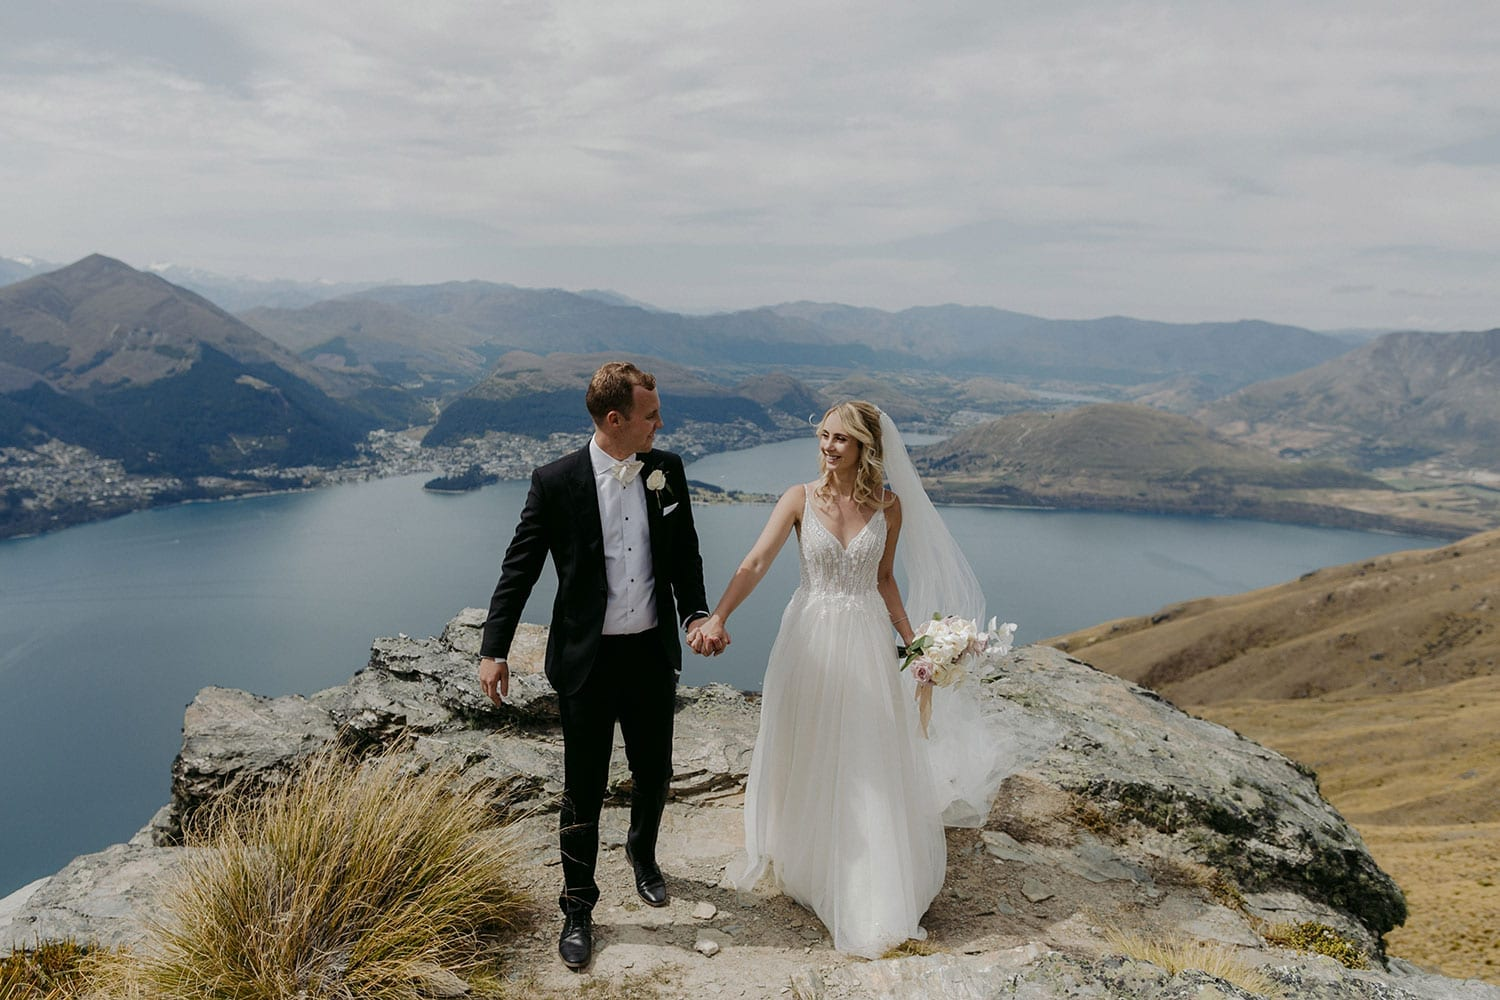 Vinka Design Features Real Weddings - bride in custom made Keiko gown from the Oriental affair collection with additional delicate dimensional flower lace added to the bodice and beading added to the skirt layers. Bride and groom on the cliffs of Lake Hays